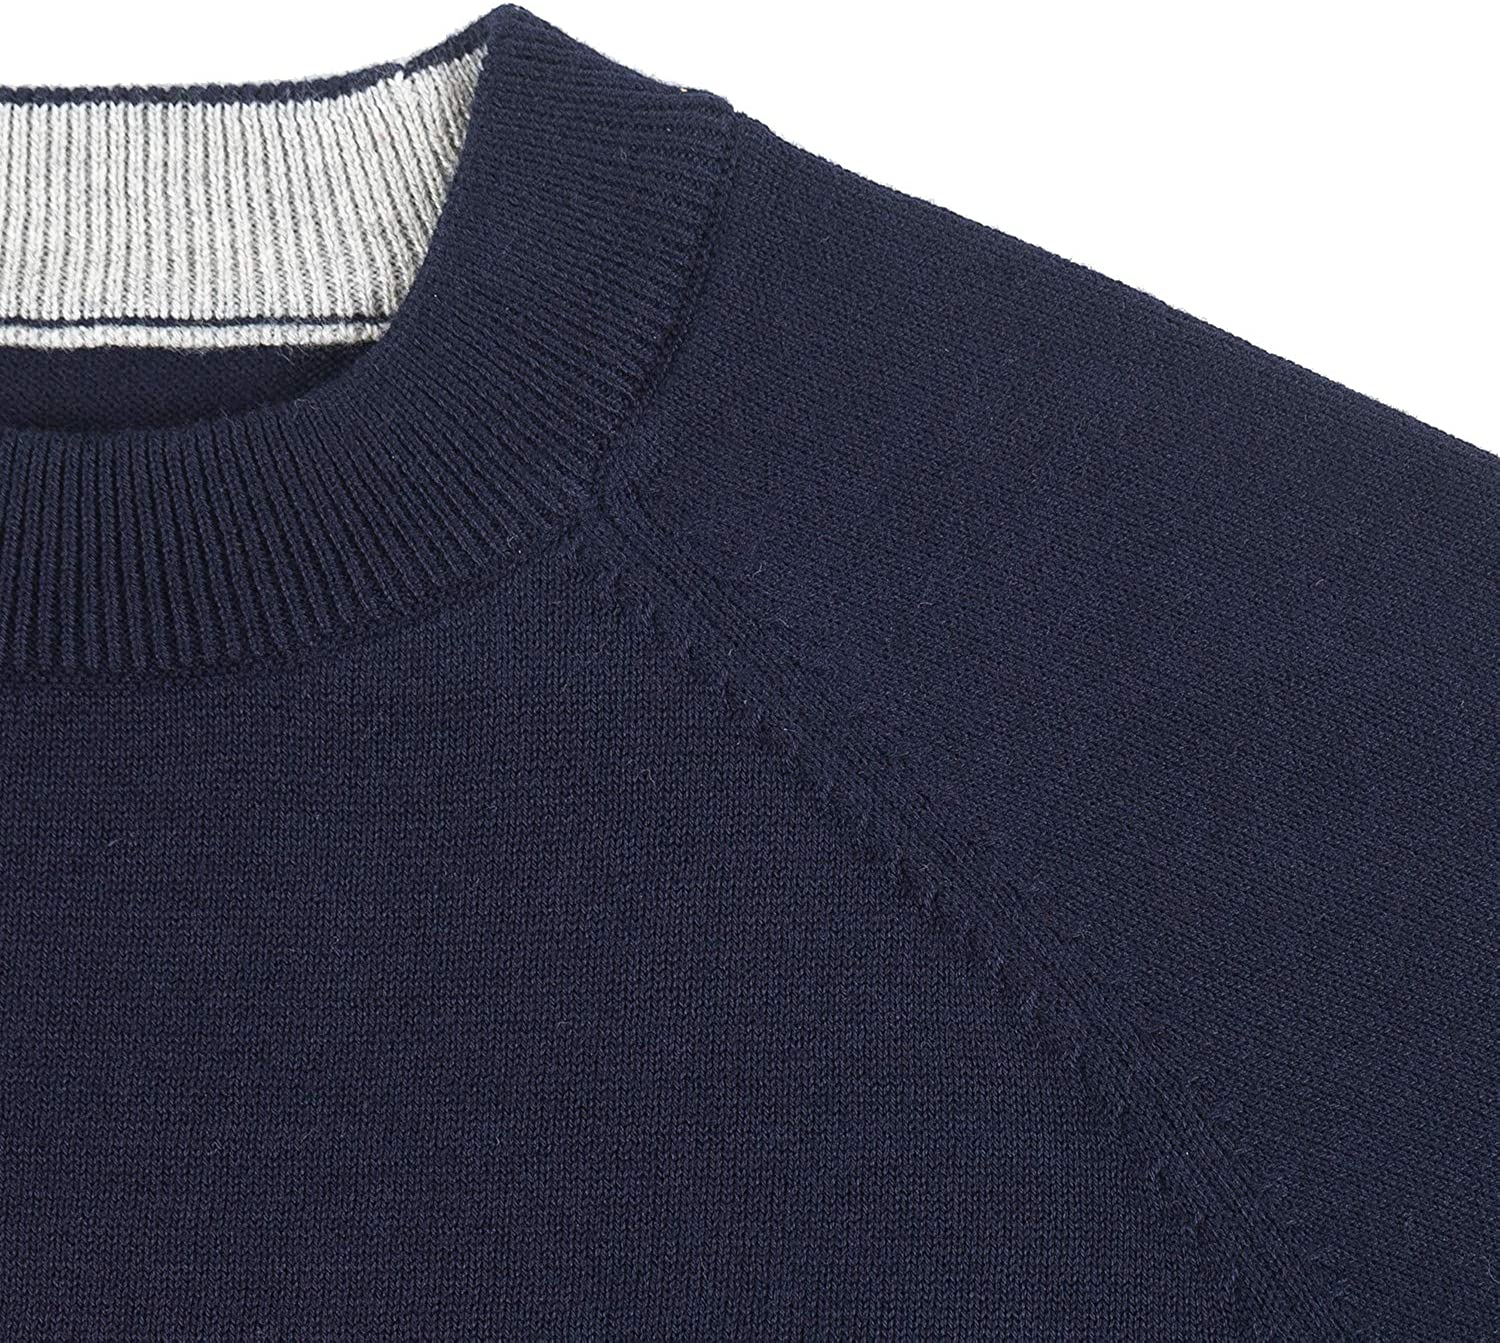 Tops Sweater for Kids Baby Boy Toddler Soft /&Cute Crew Neck Jacquard Knit